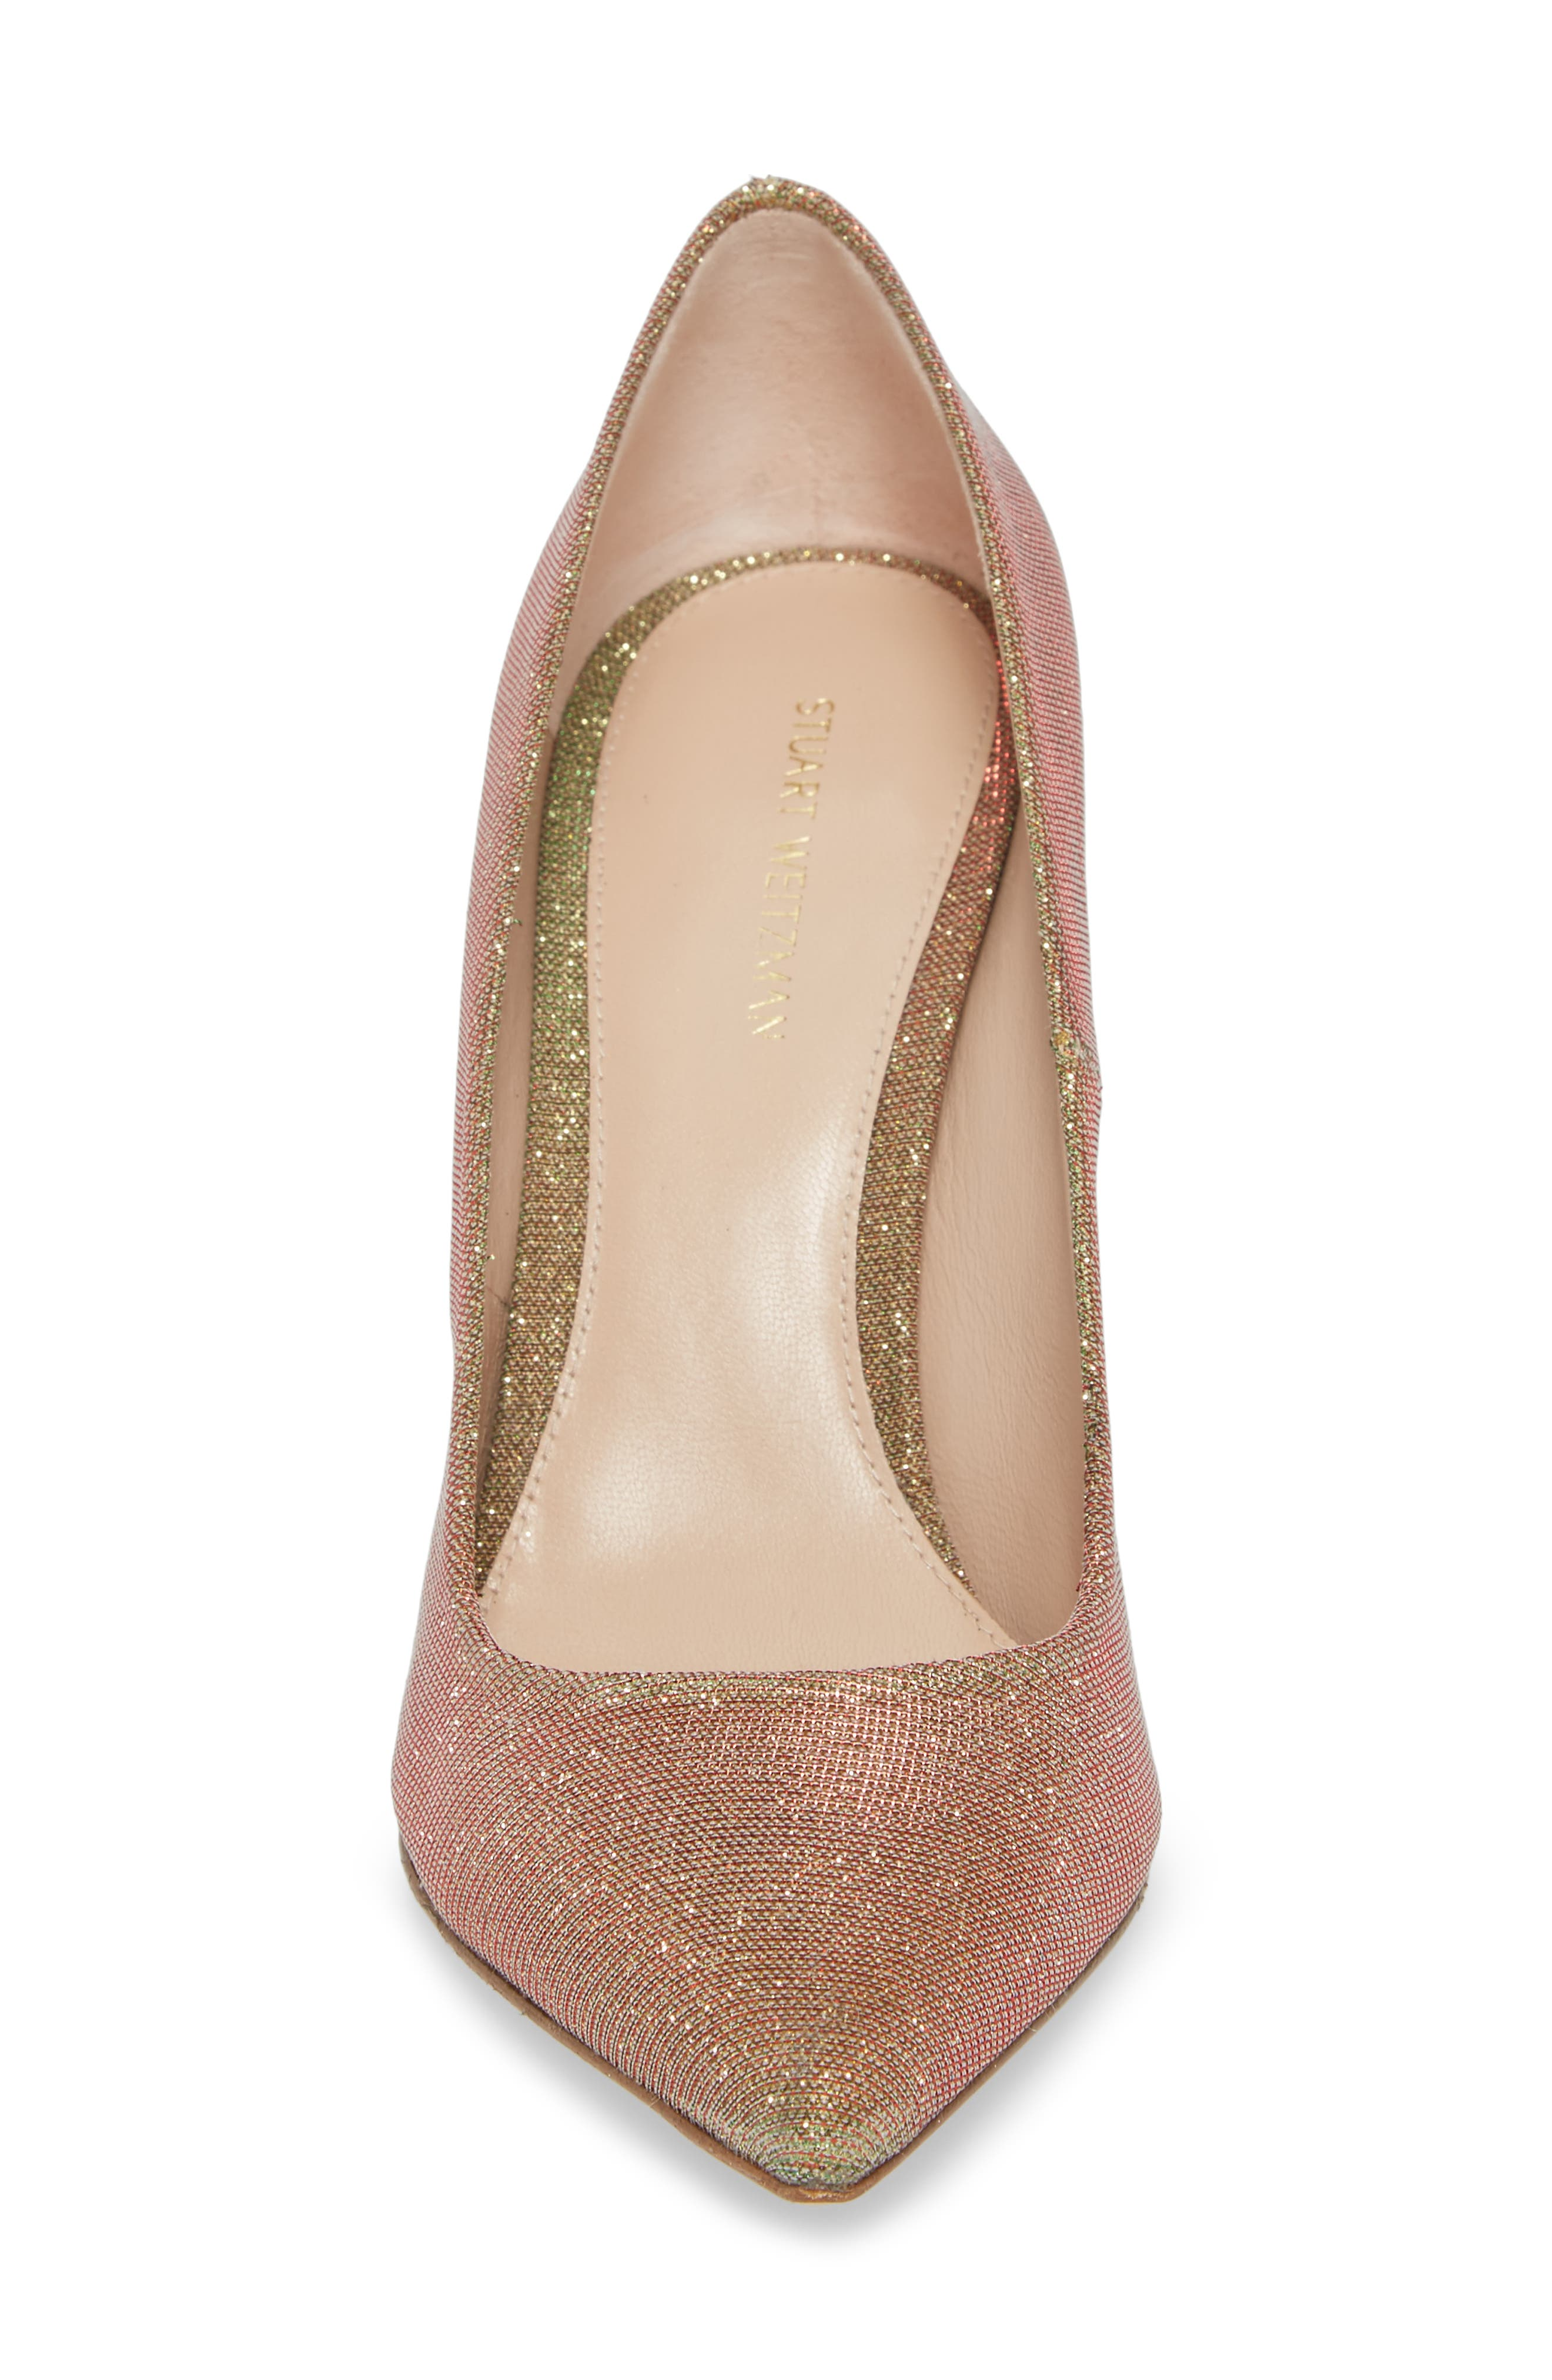 Chicster Pointy Toe Pump,                             Alternate thumbnail 4, color,                             Gold Multi Nighttime